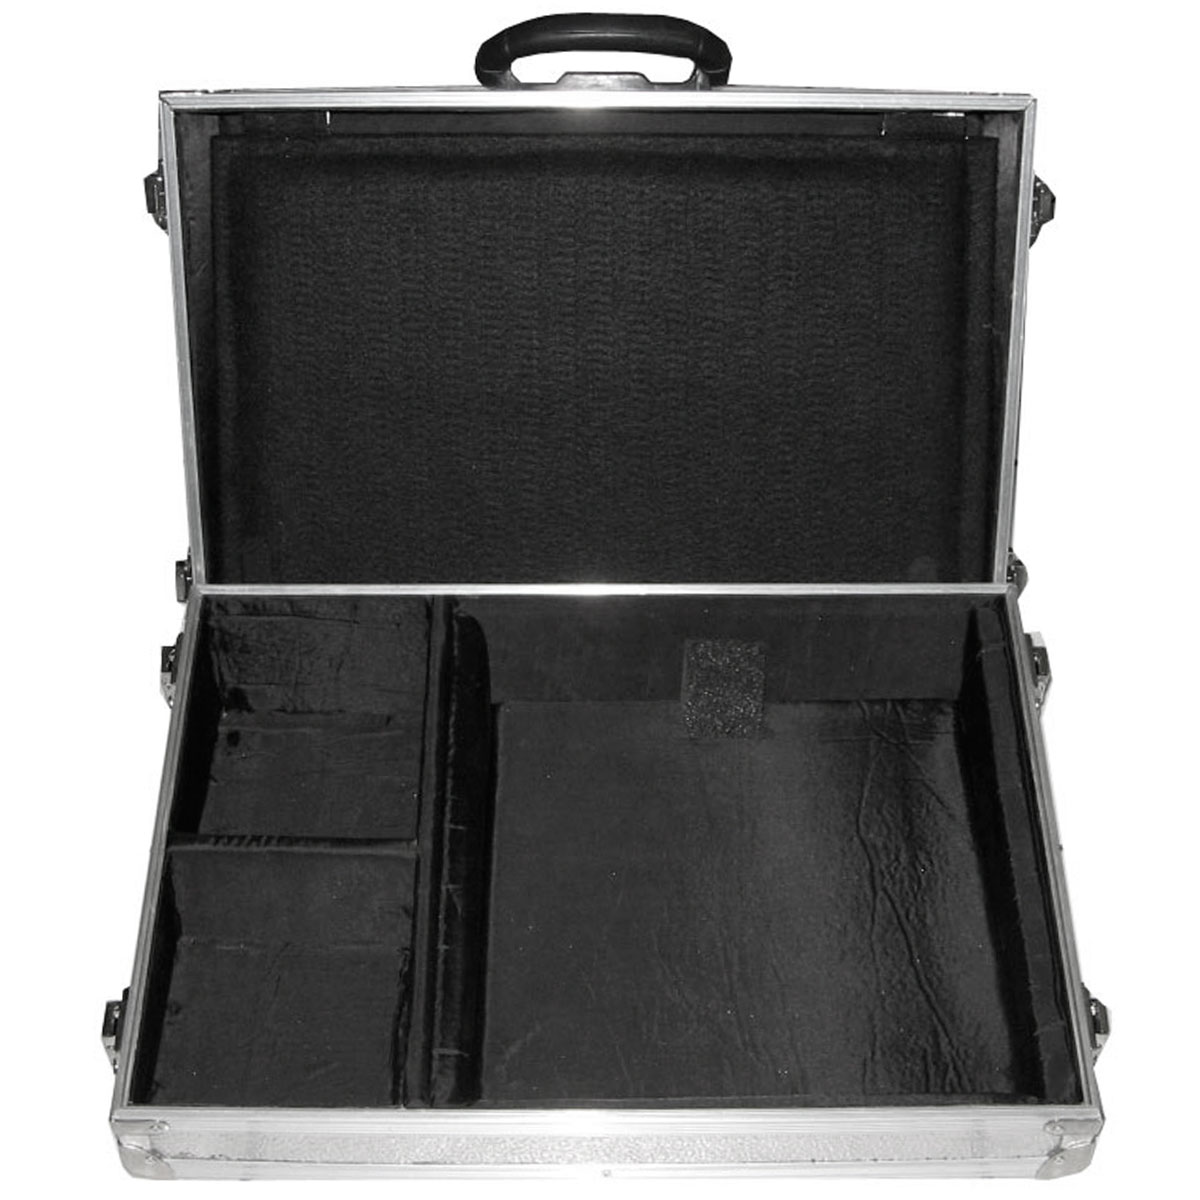 Case p/ BCD 3000 + Fone + NoteBook c/ Tampa Removivel